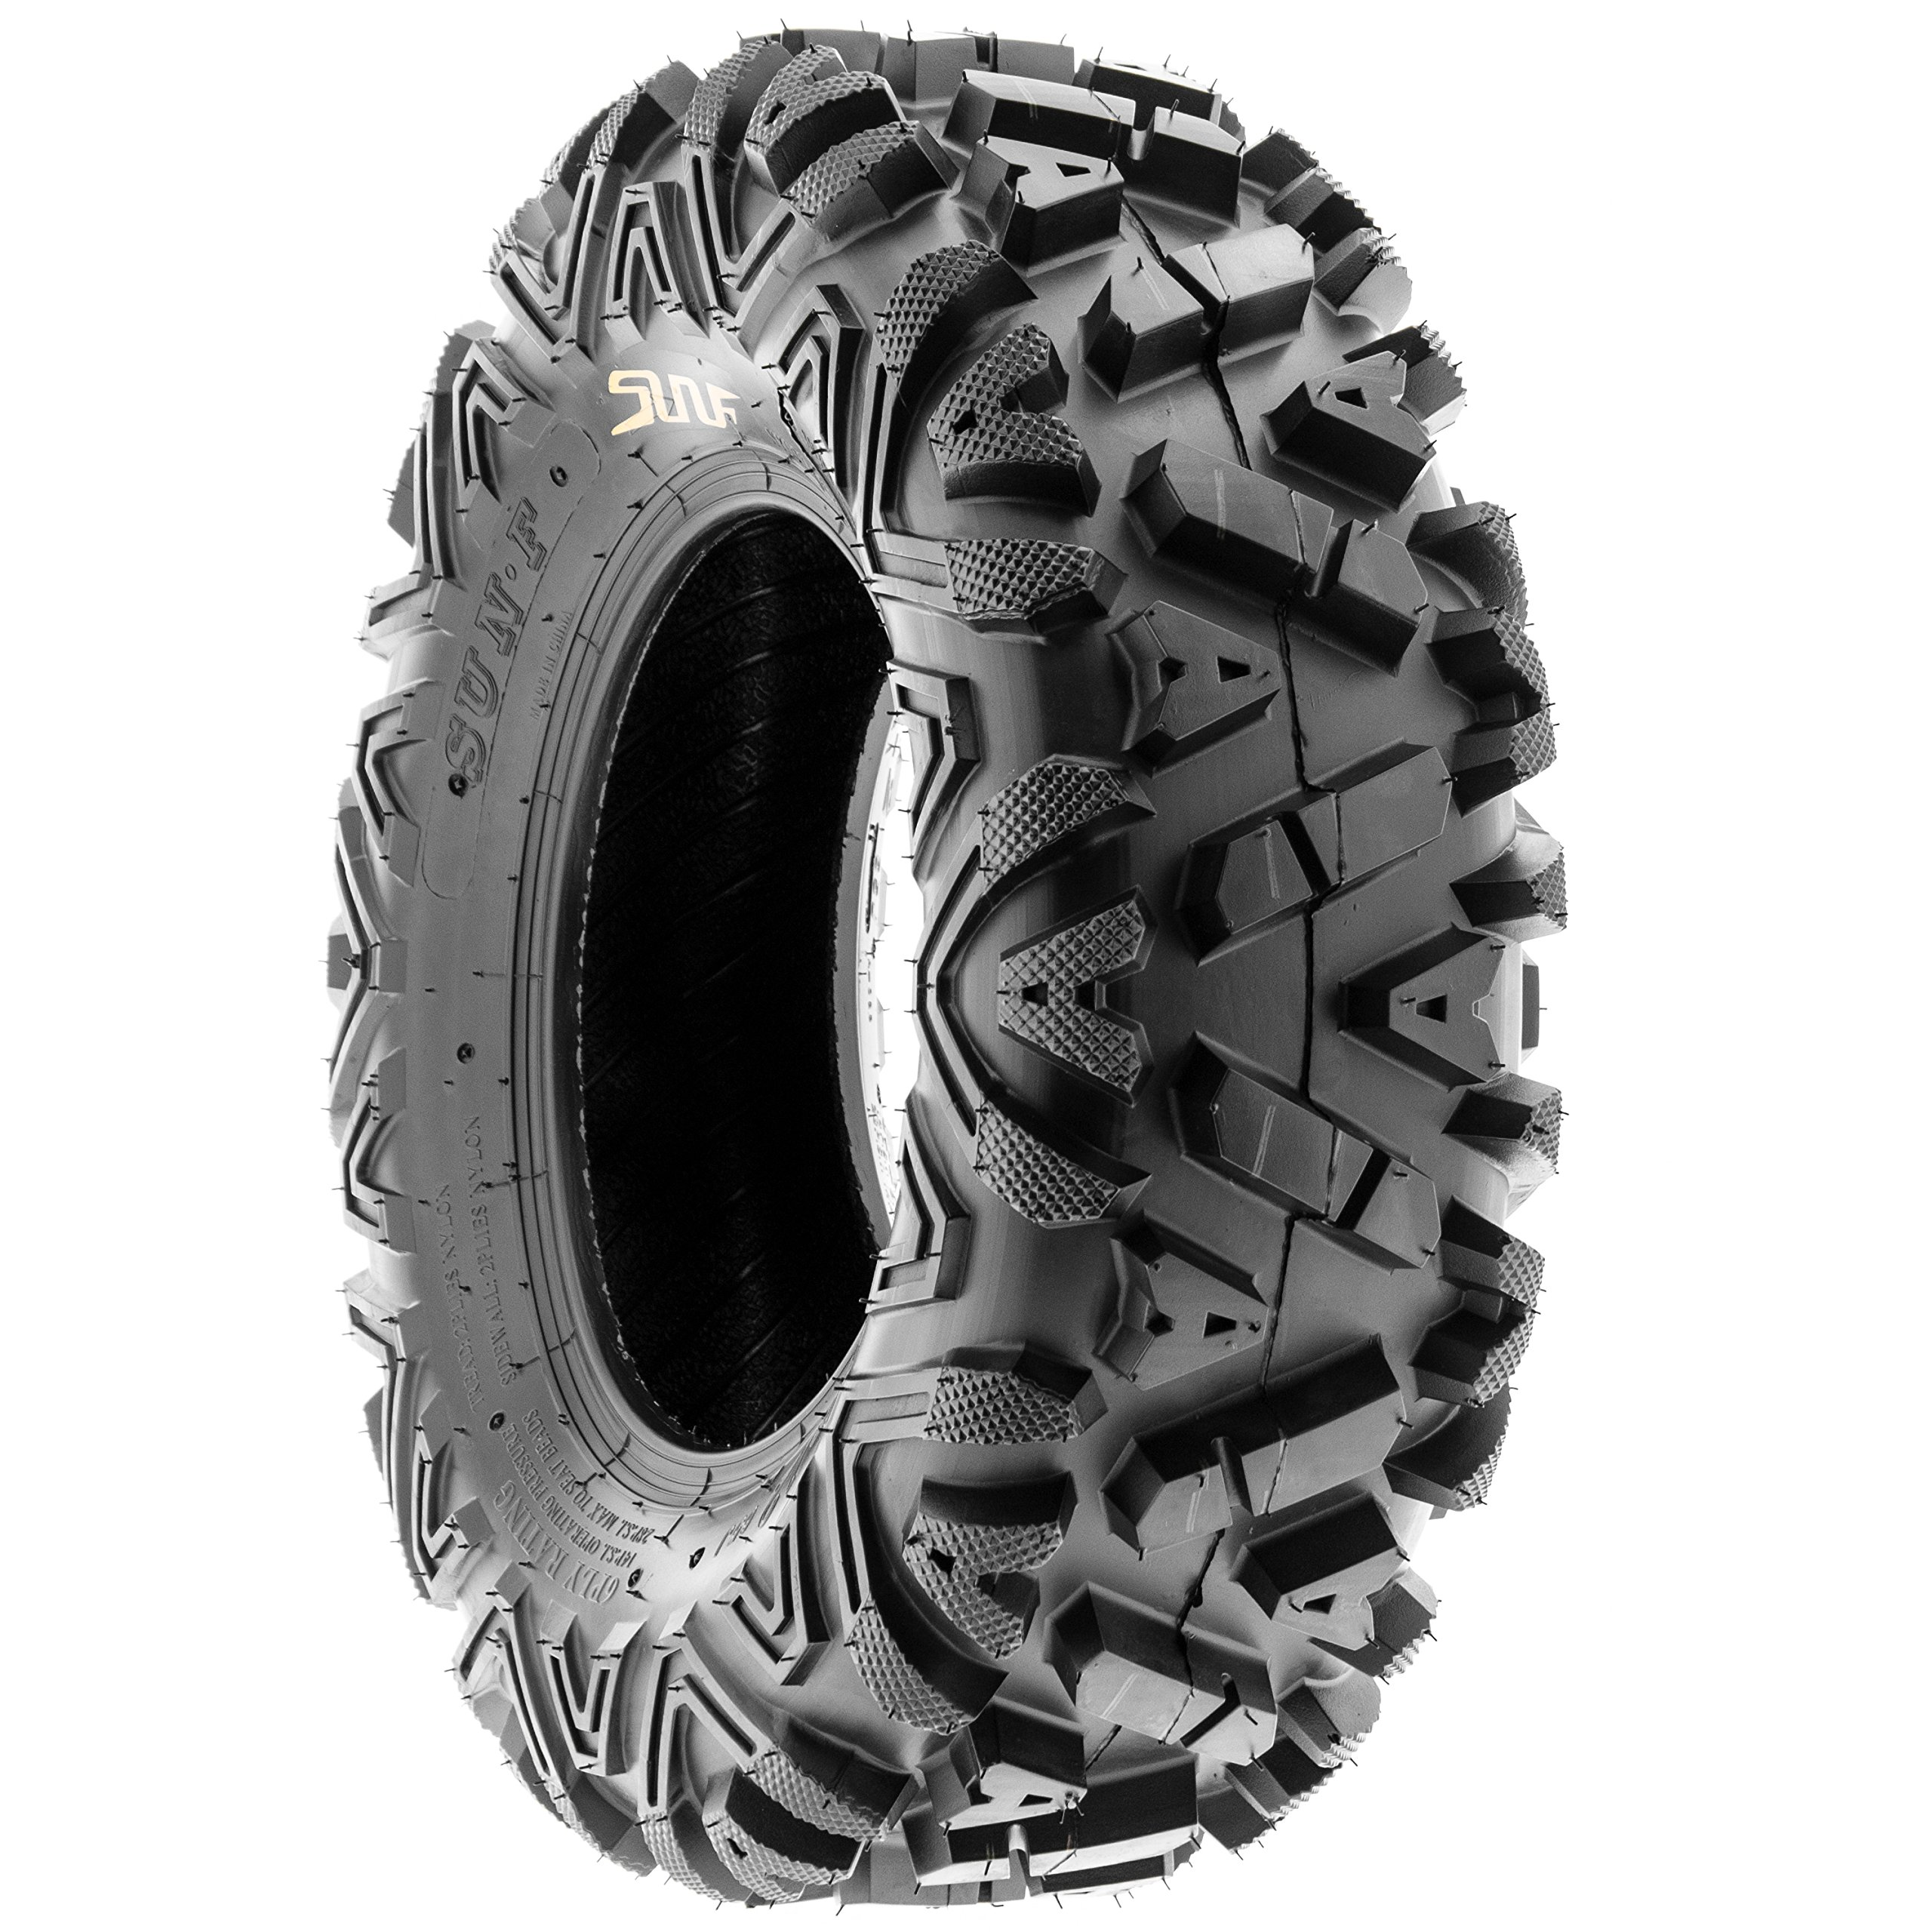 SunF 29x9-14 29x9x14 ATV UTV All Terrain AT Tire 6 PR A033 (Single) by SunF (Image #9)